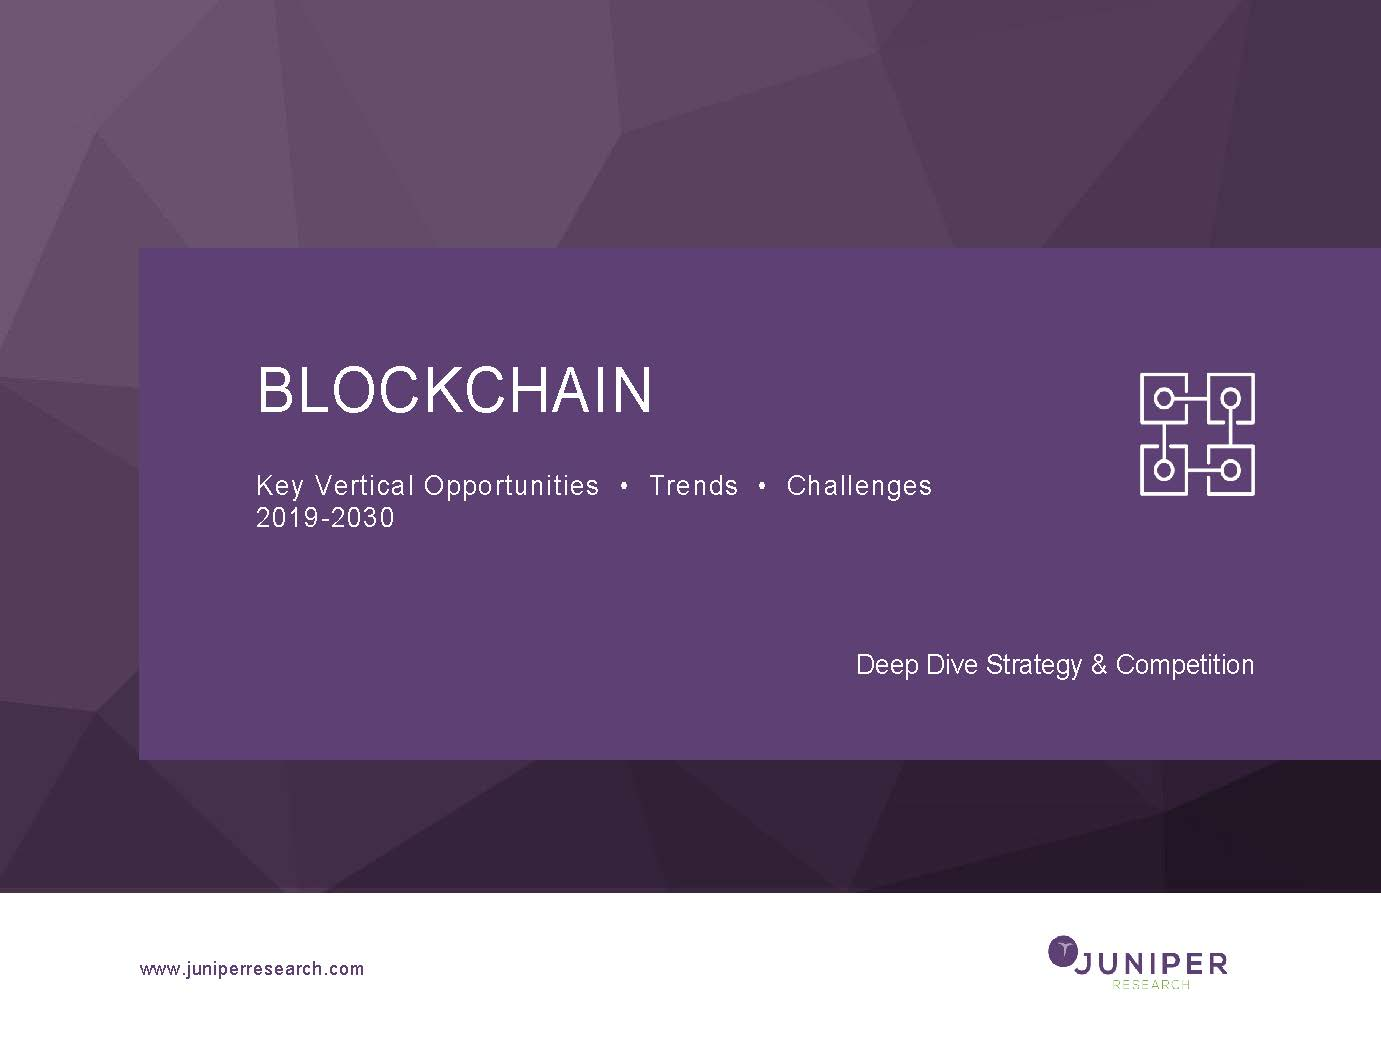 Blockchain - Deep Dive Strategy & Competition 2019-2030